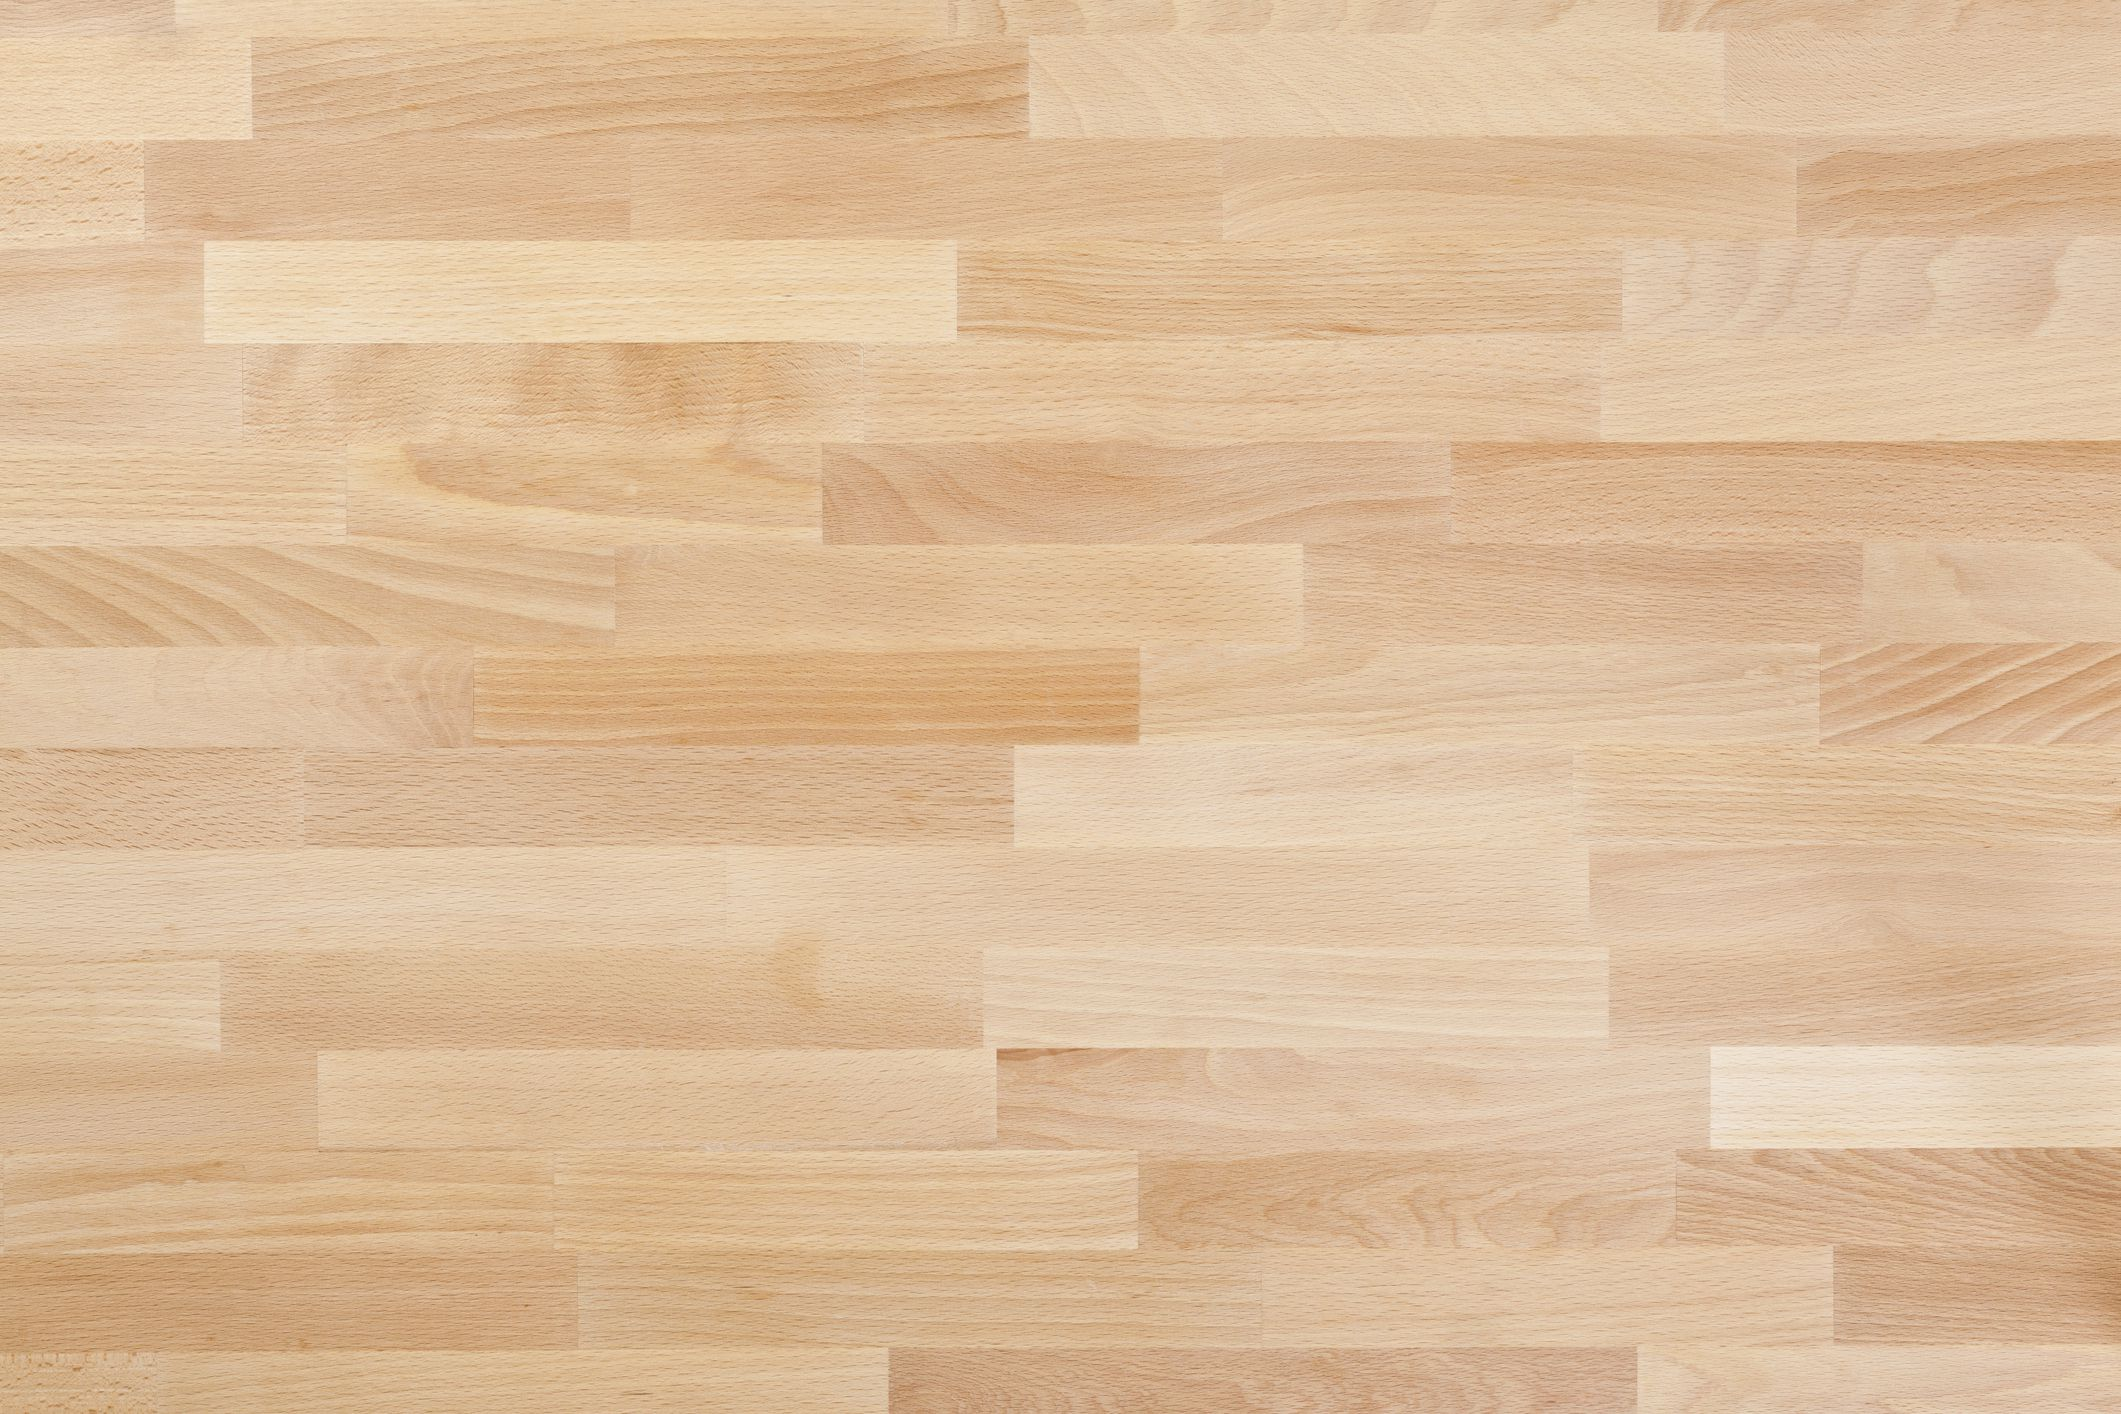 Laminated Wood Of Does Laminate Flooring Scratch Easily